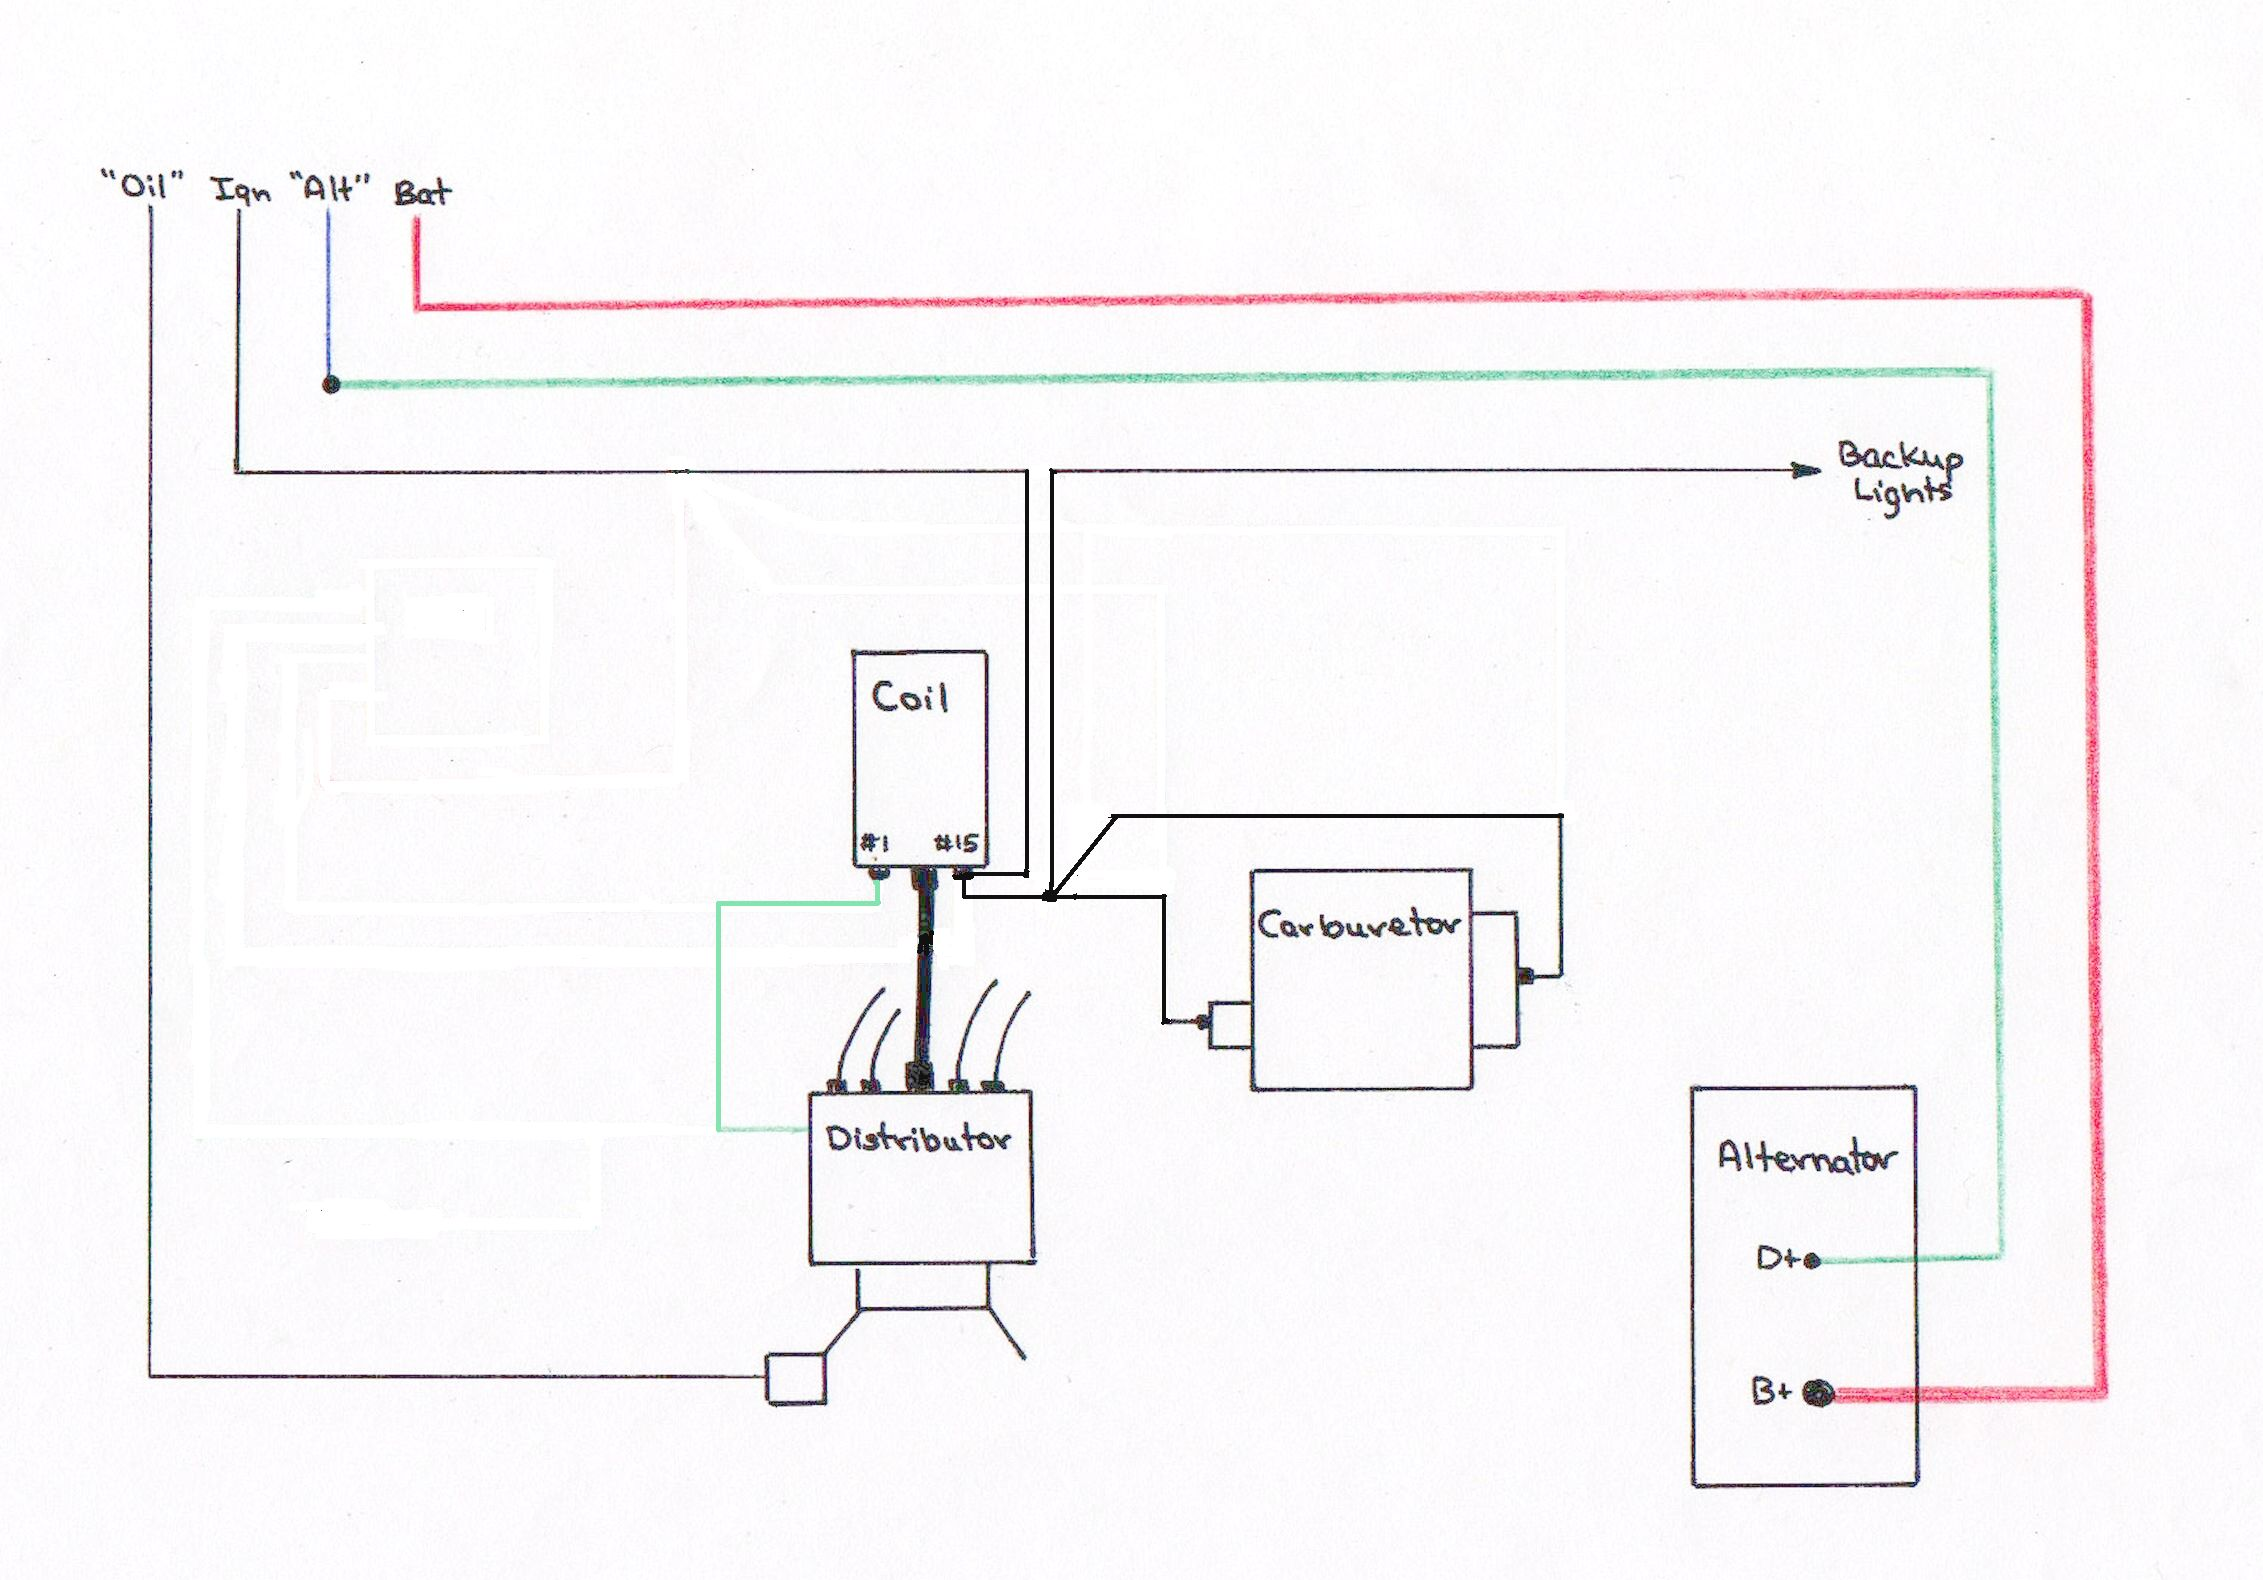 handdrawn_schematic alternator wiring 1979 ford escort wiring diagram at n-0.co